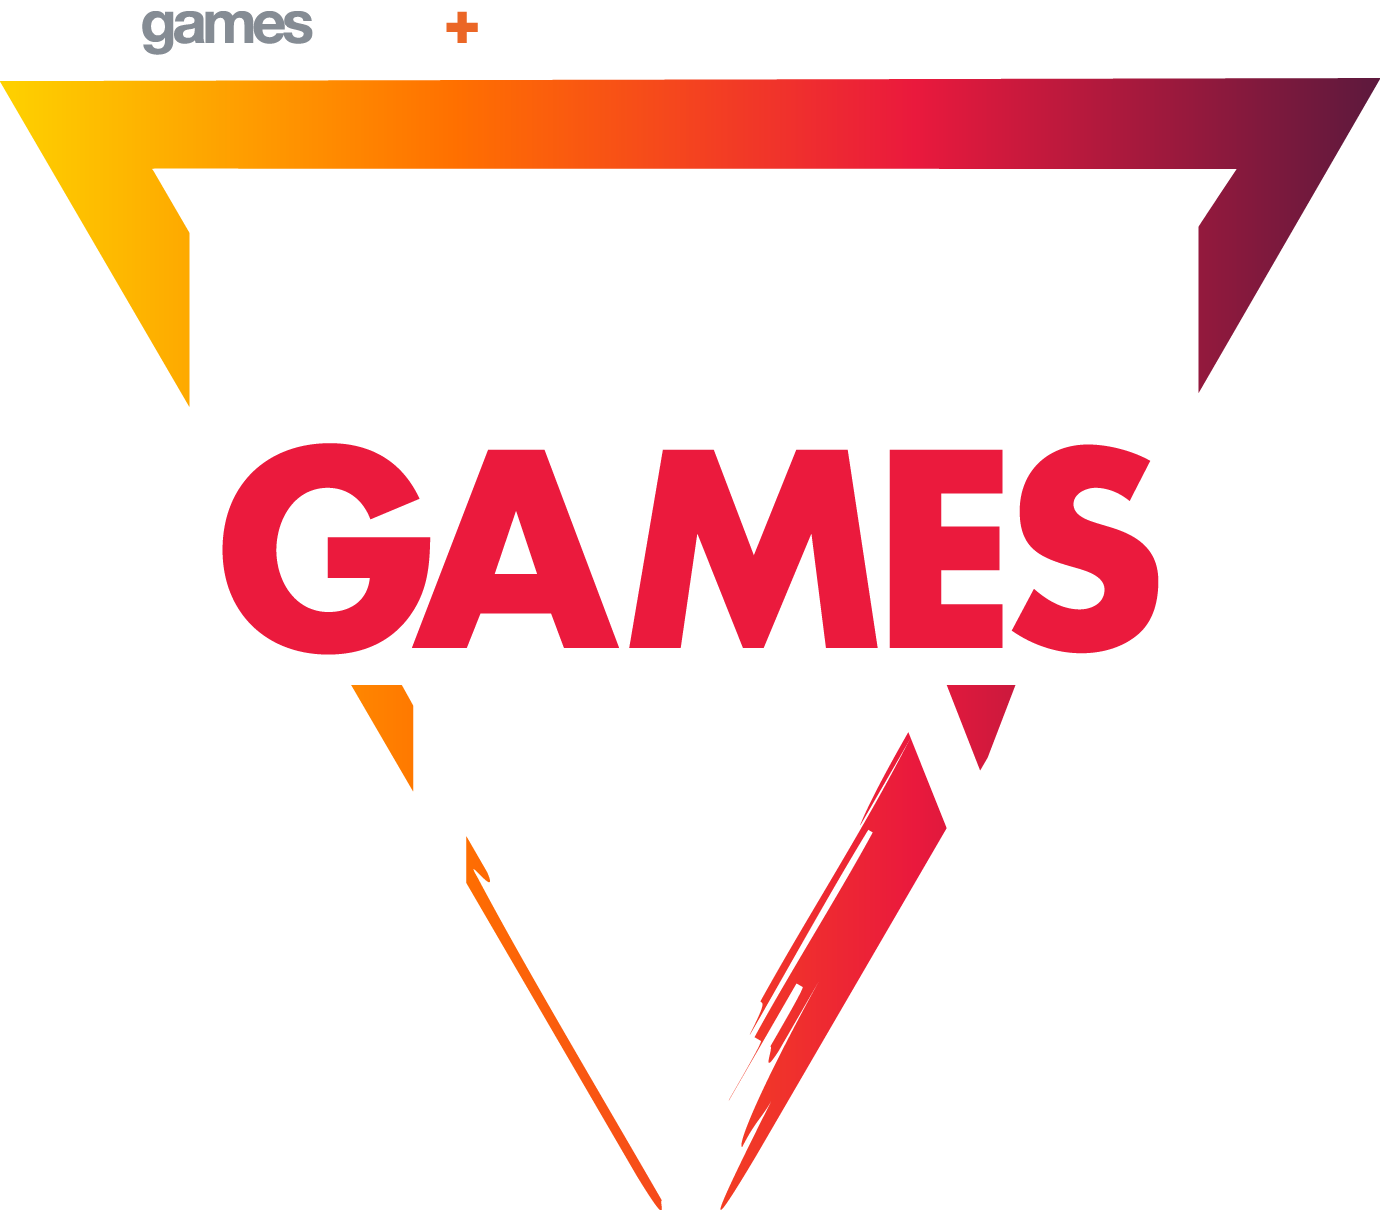 Game developers: Showcase your game in the upcoming Future Games Show